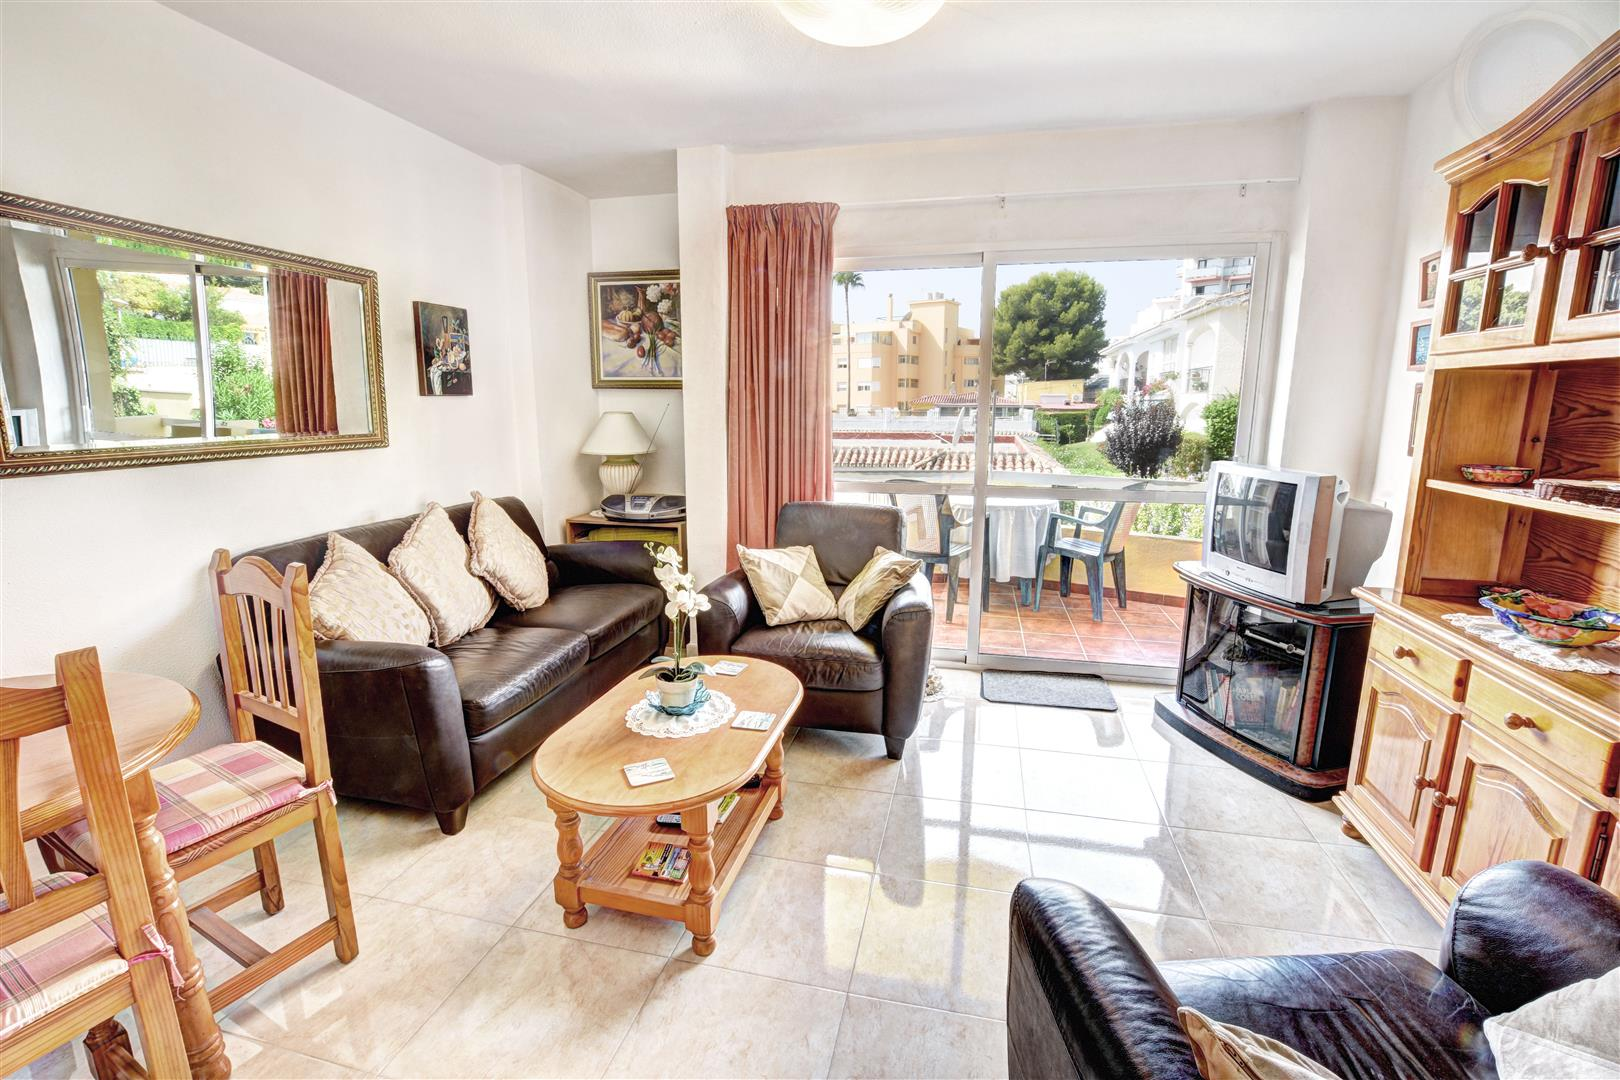 Apartment for Sale in Benalmadena Costa Orfeo Azul 2